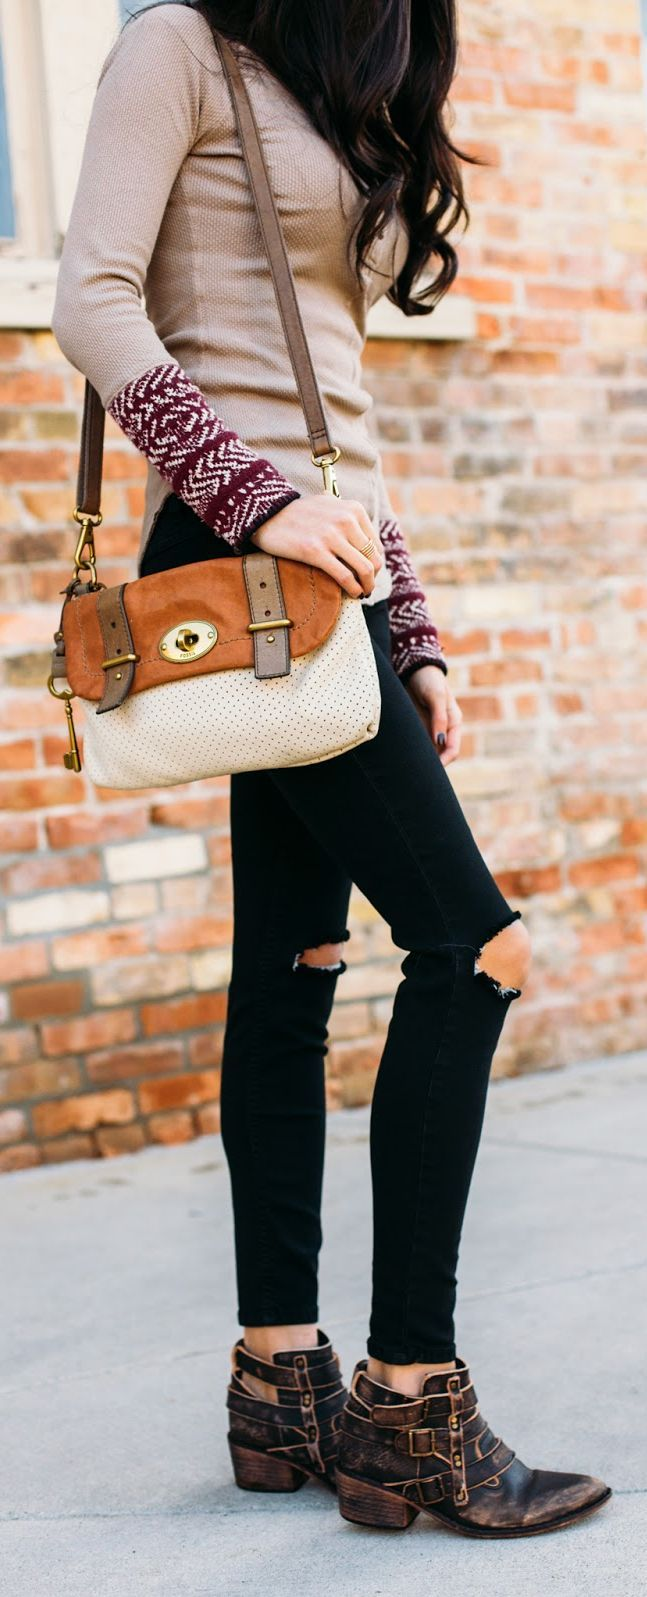 Chilly Days Outfit Idea by Simply hued